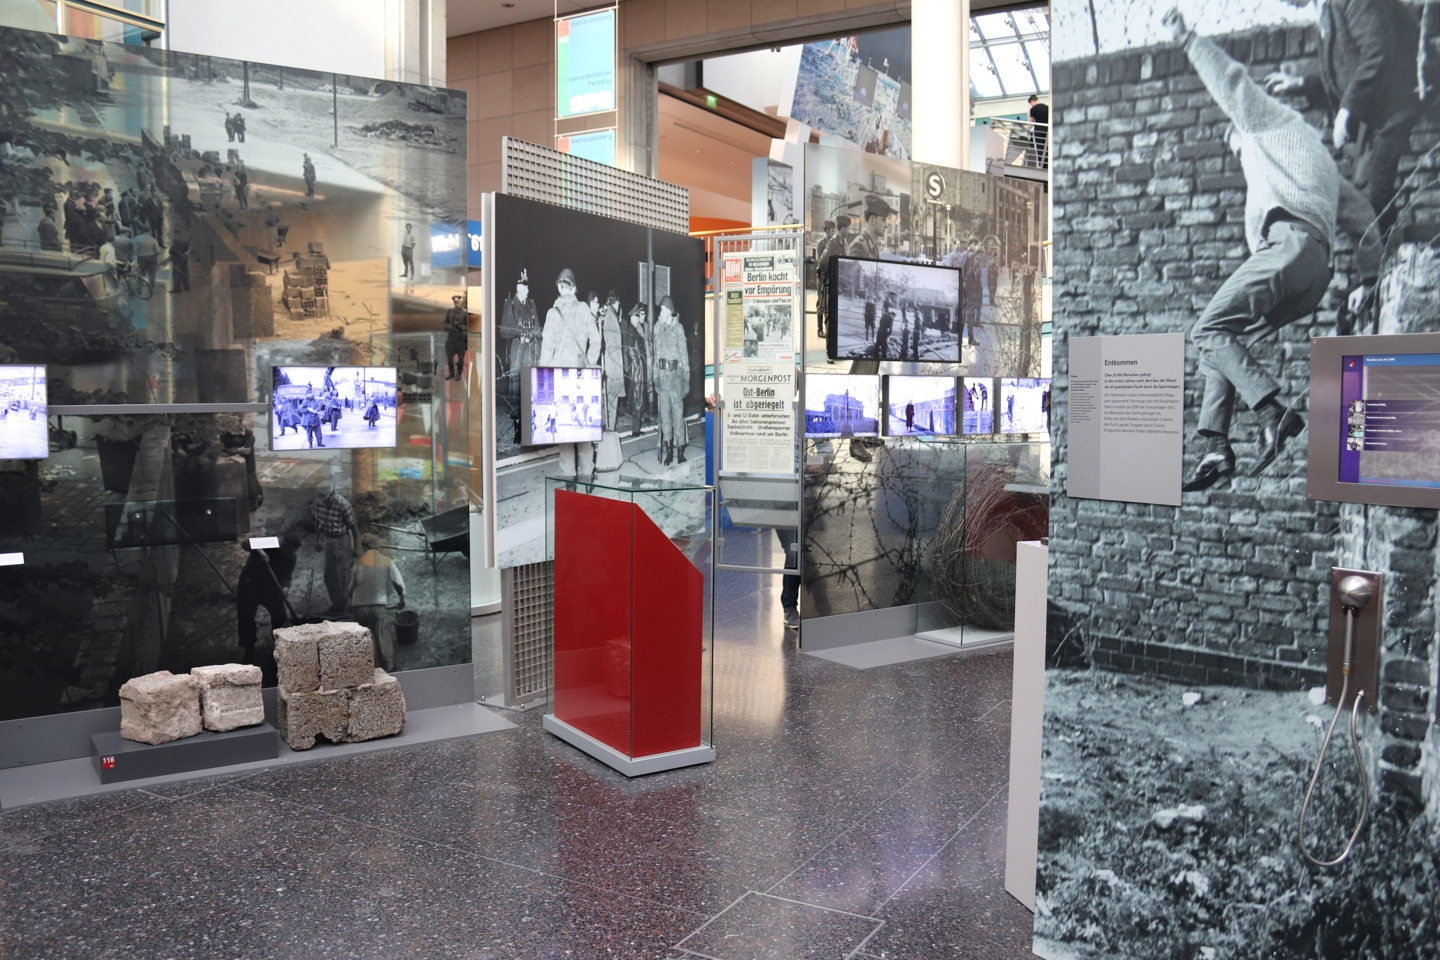 Part of the exhibition about the Berlin Wall.